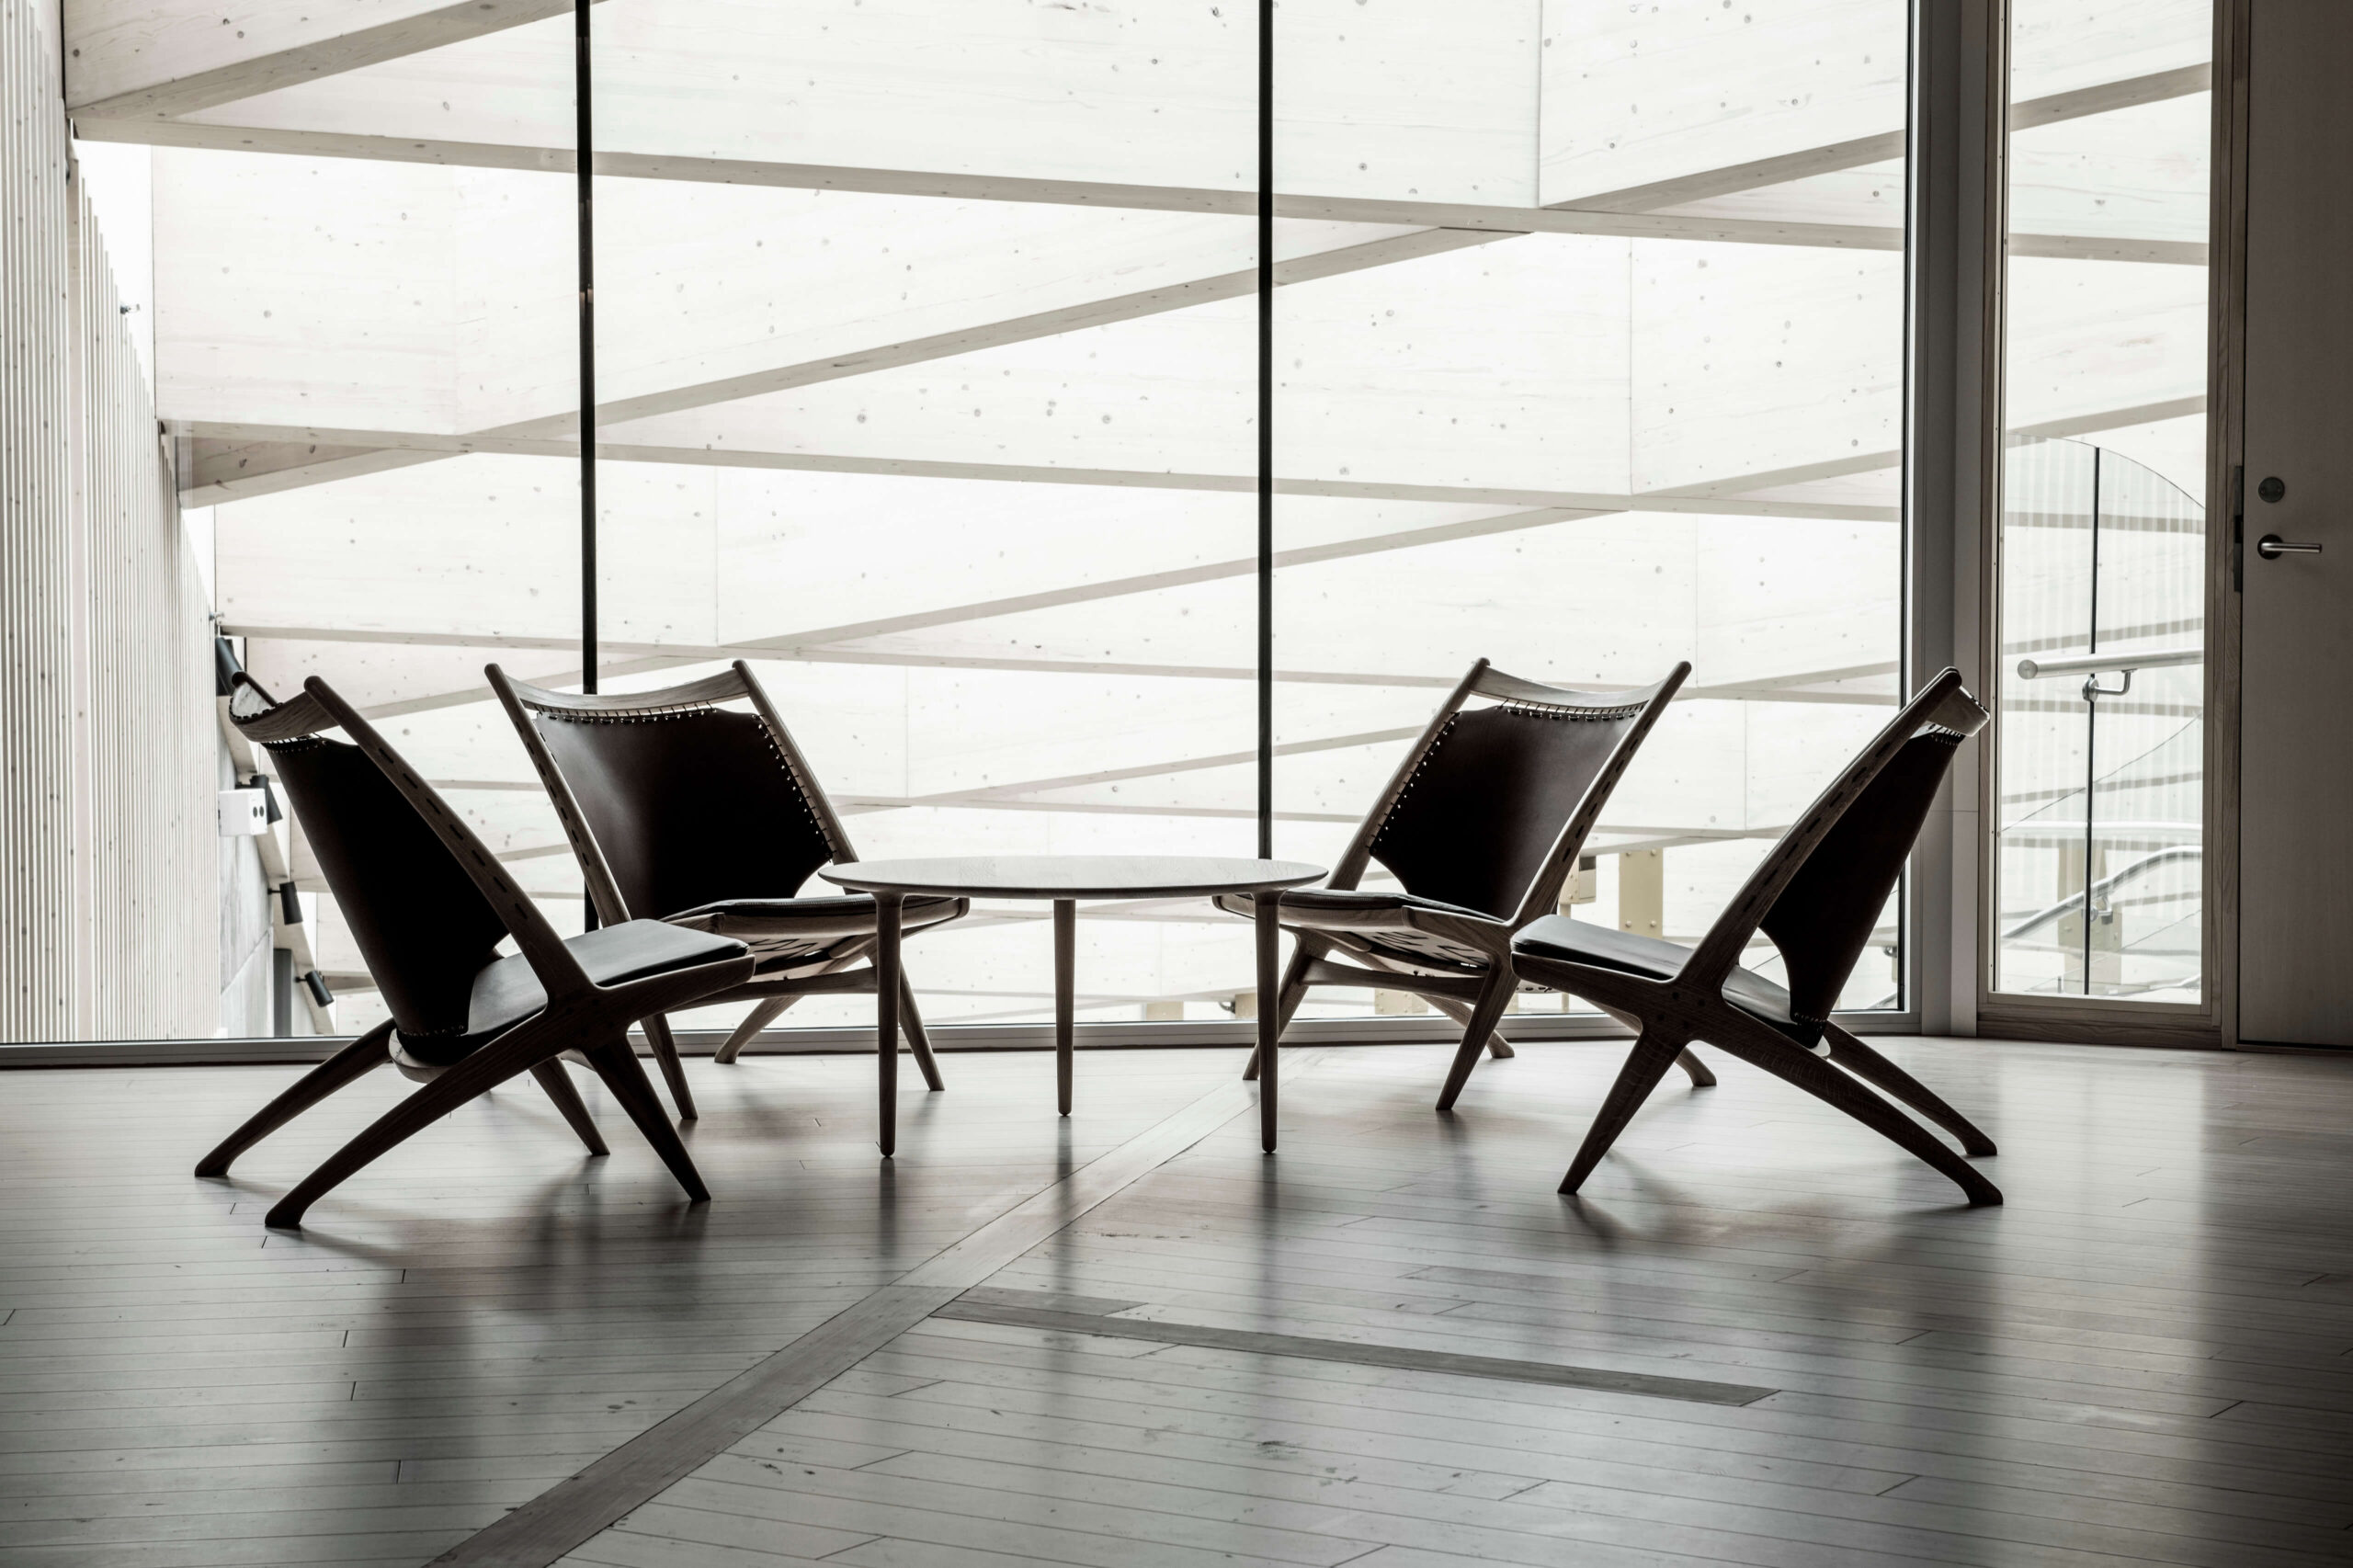 Krysset lounge chair and Evja coffee table at Finansparken